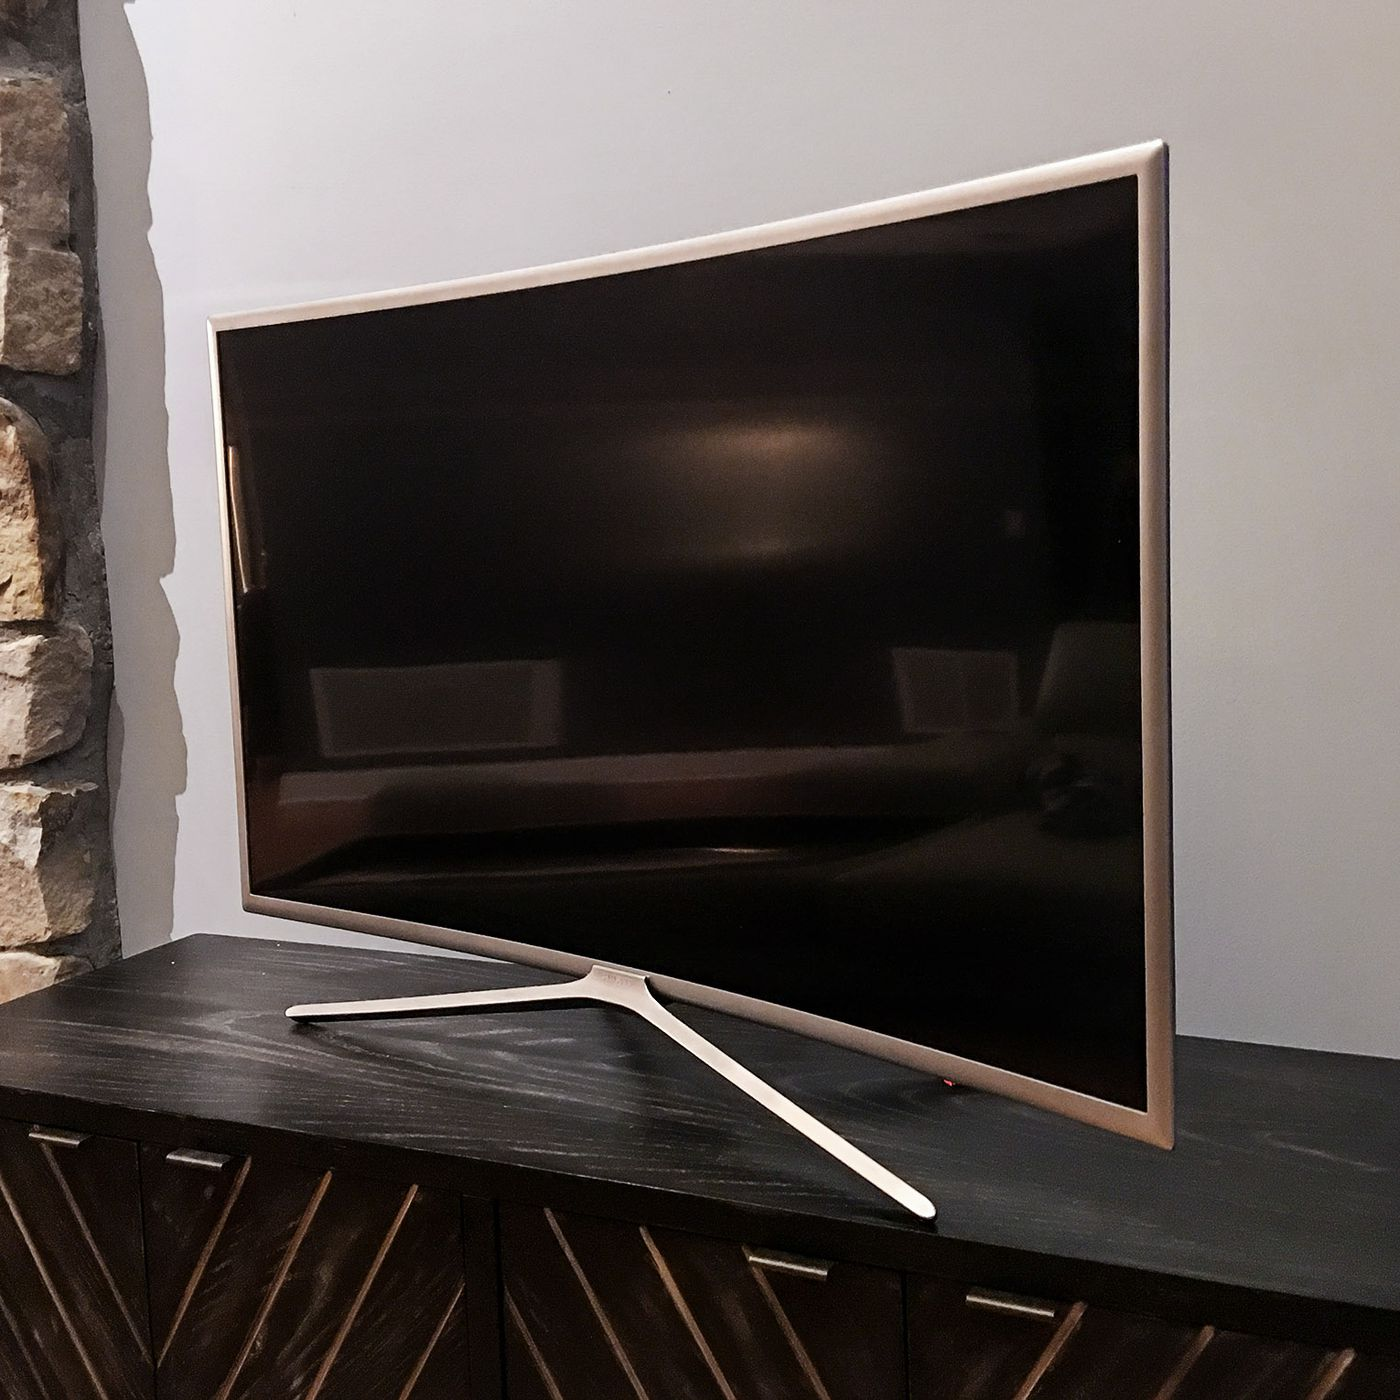 A Review Of My New Samsung Curved Tv I Hate It So Much The Verge